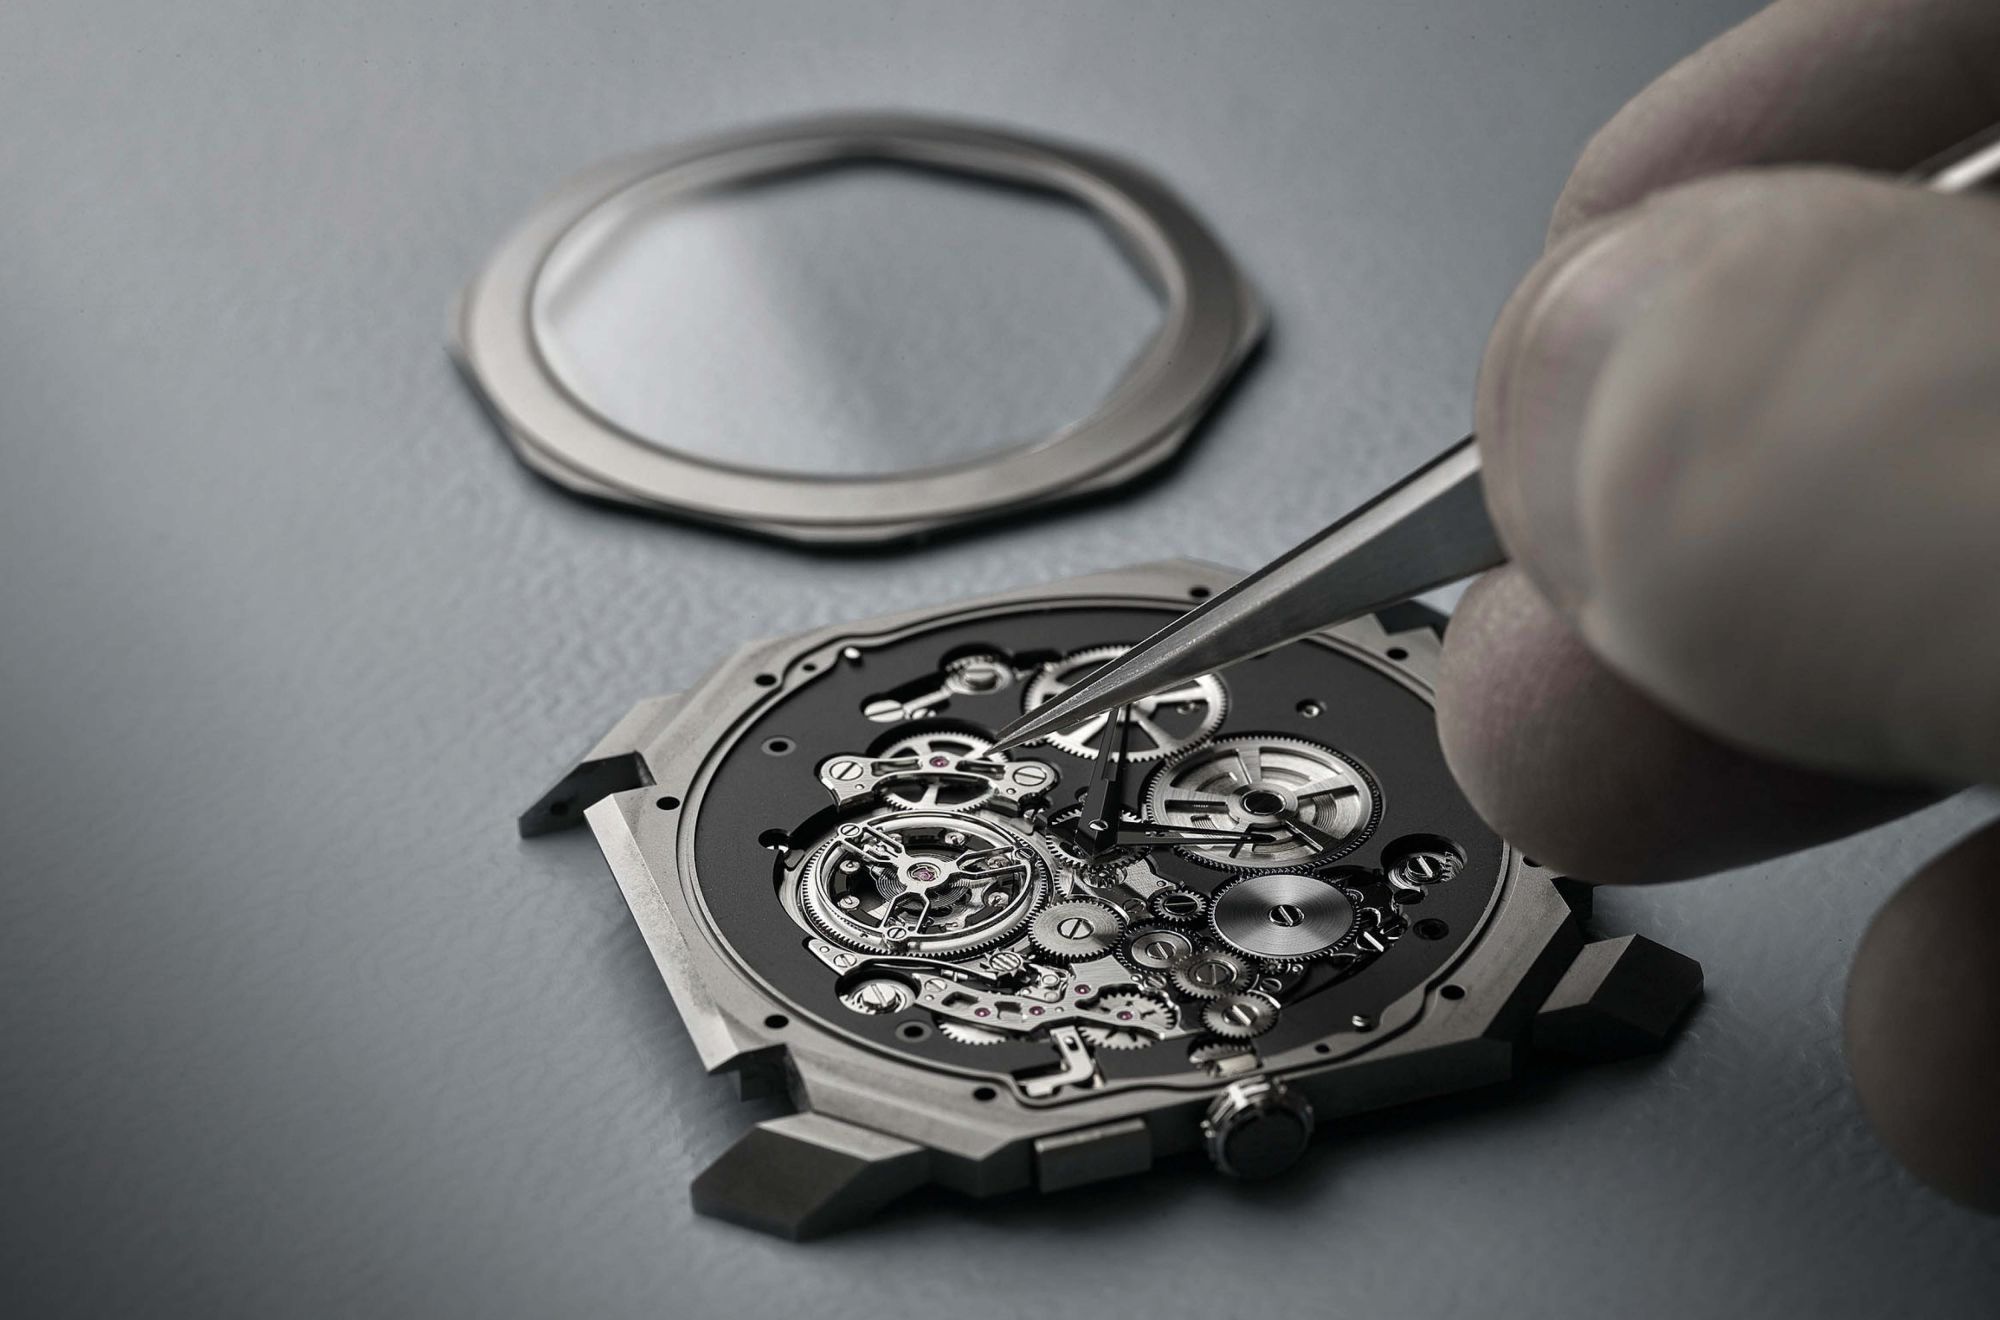 Introducing The World's Thinnest Watch With A Flying Tourbillon